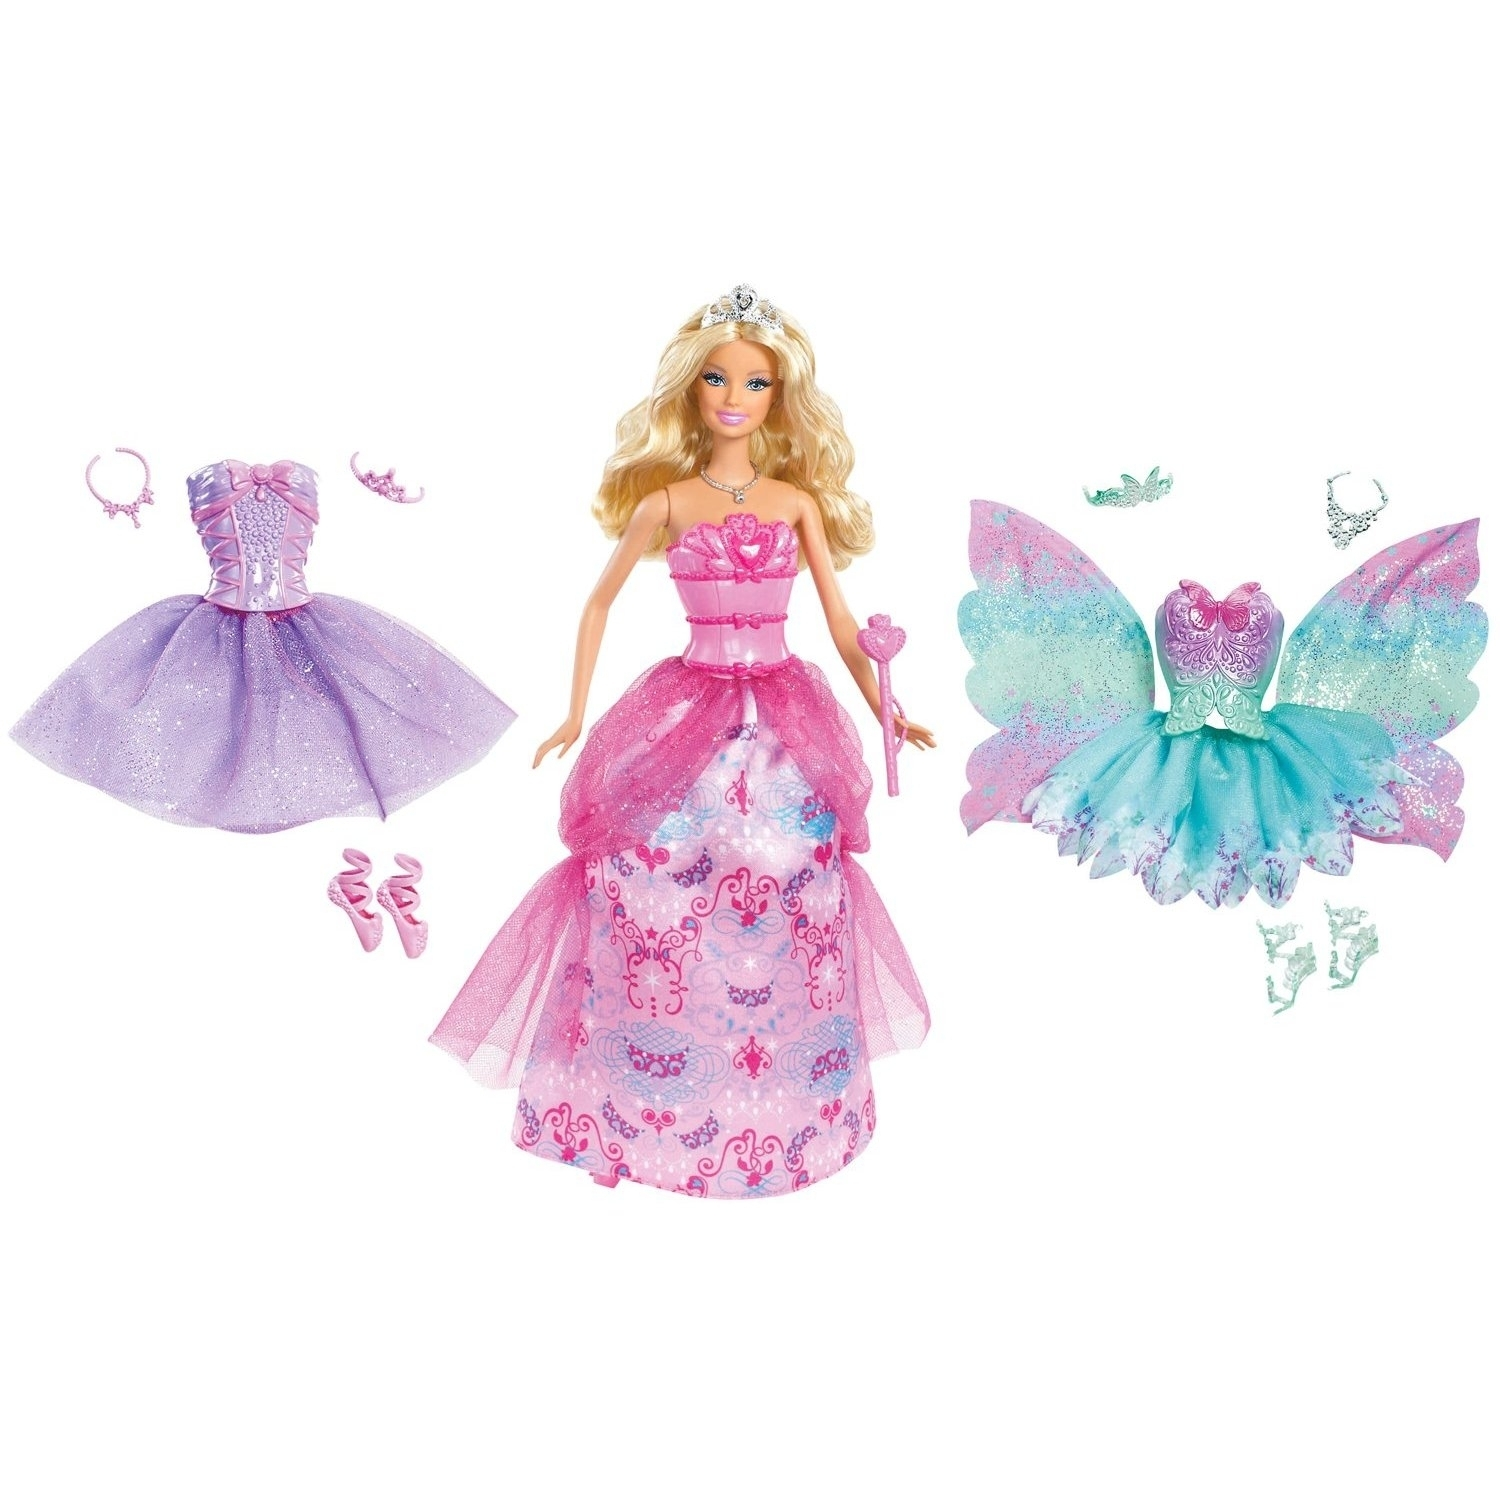 Barbie___________506be5e732b28